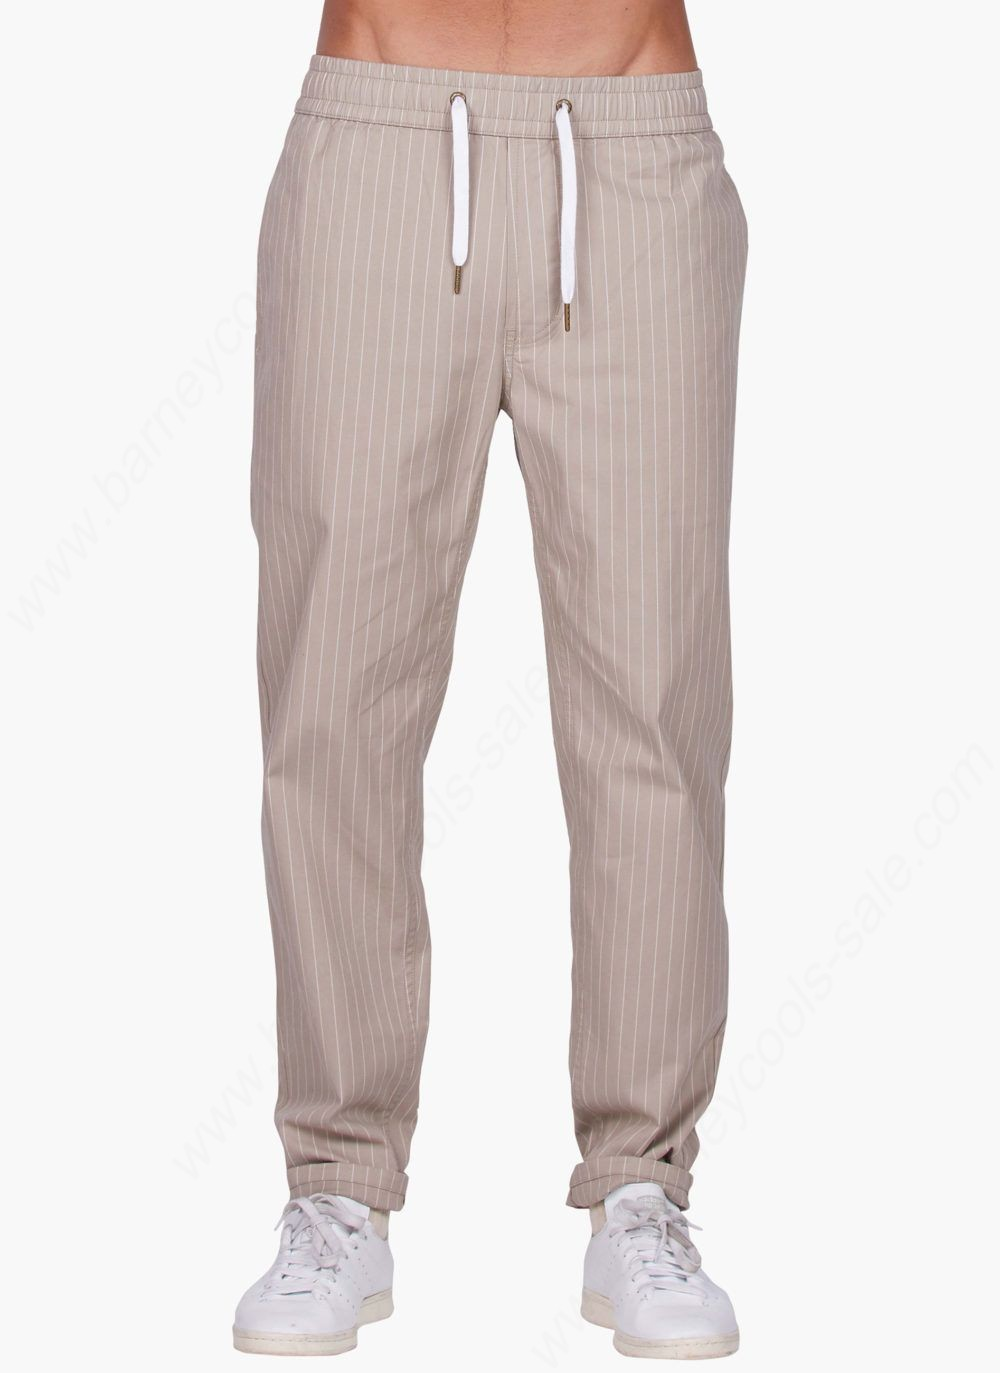 Barney Cools Man B.rabbit Chino (Carrot Fit) Tan Stripe Pants - Barney Cools Man B.rabbit Chino (Carrot Fit) Tan Stripe Pants